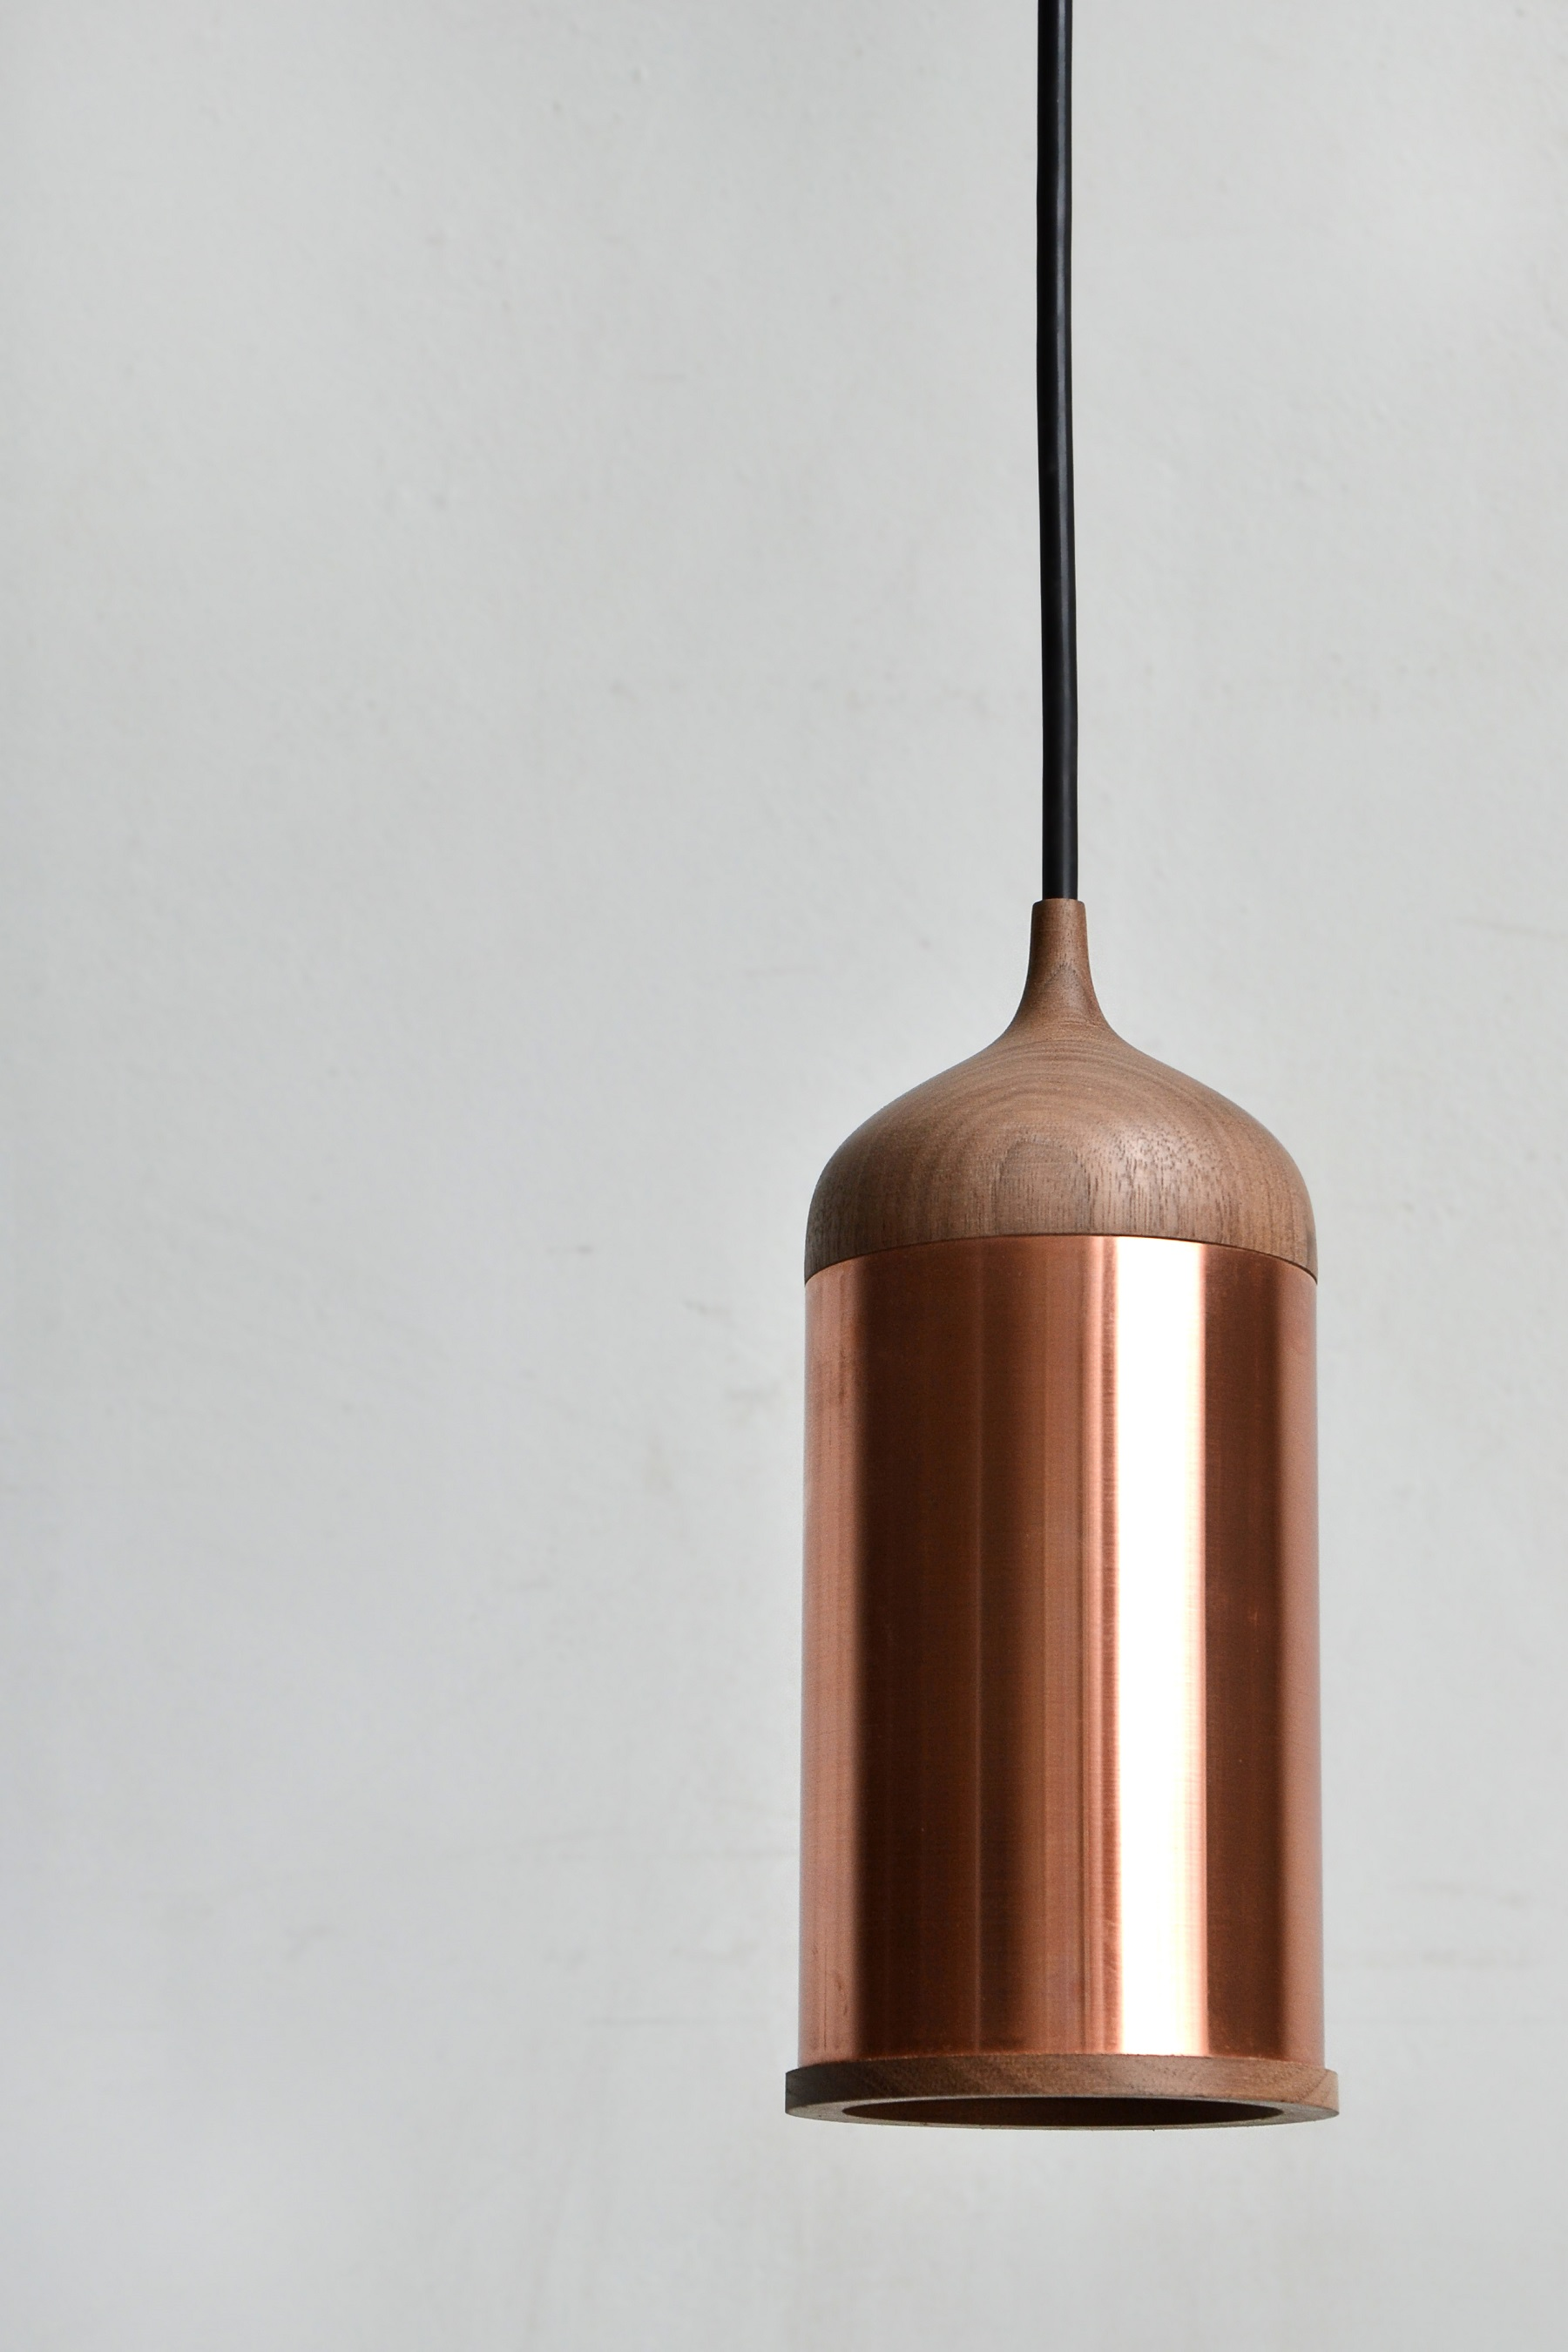 Copperlamp van Steven Banken